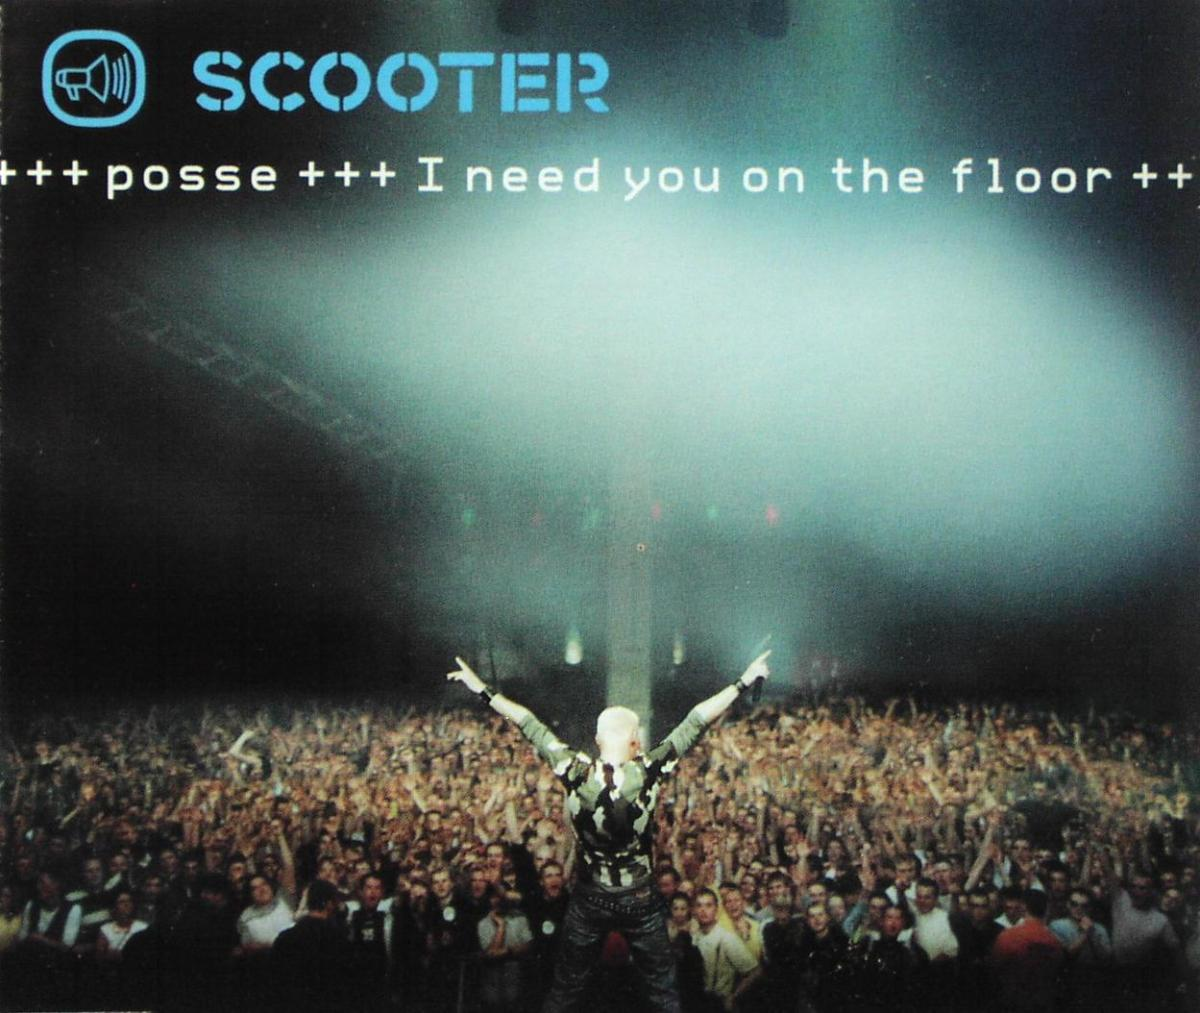 Scooter - Posse (I Need You On The Floor) [CD-Single]